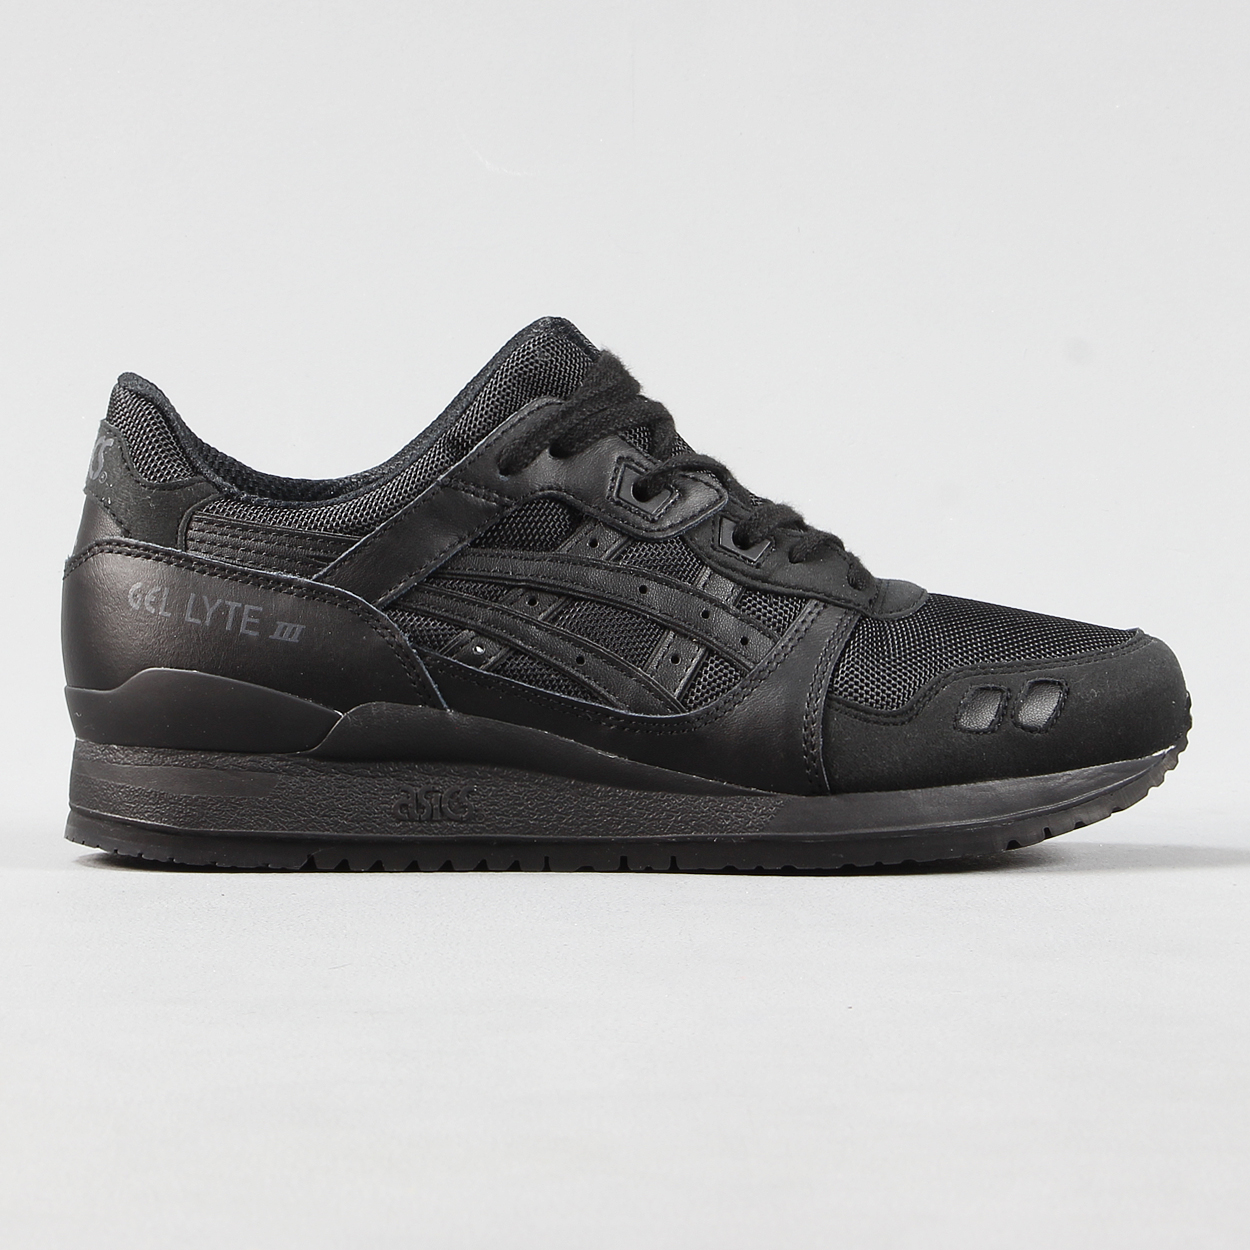 new product d3ce8 26880 Asics Mens Gel Lyte III Retro Running Trainer Shoes Mesh ...